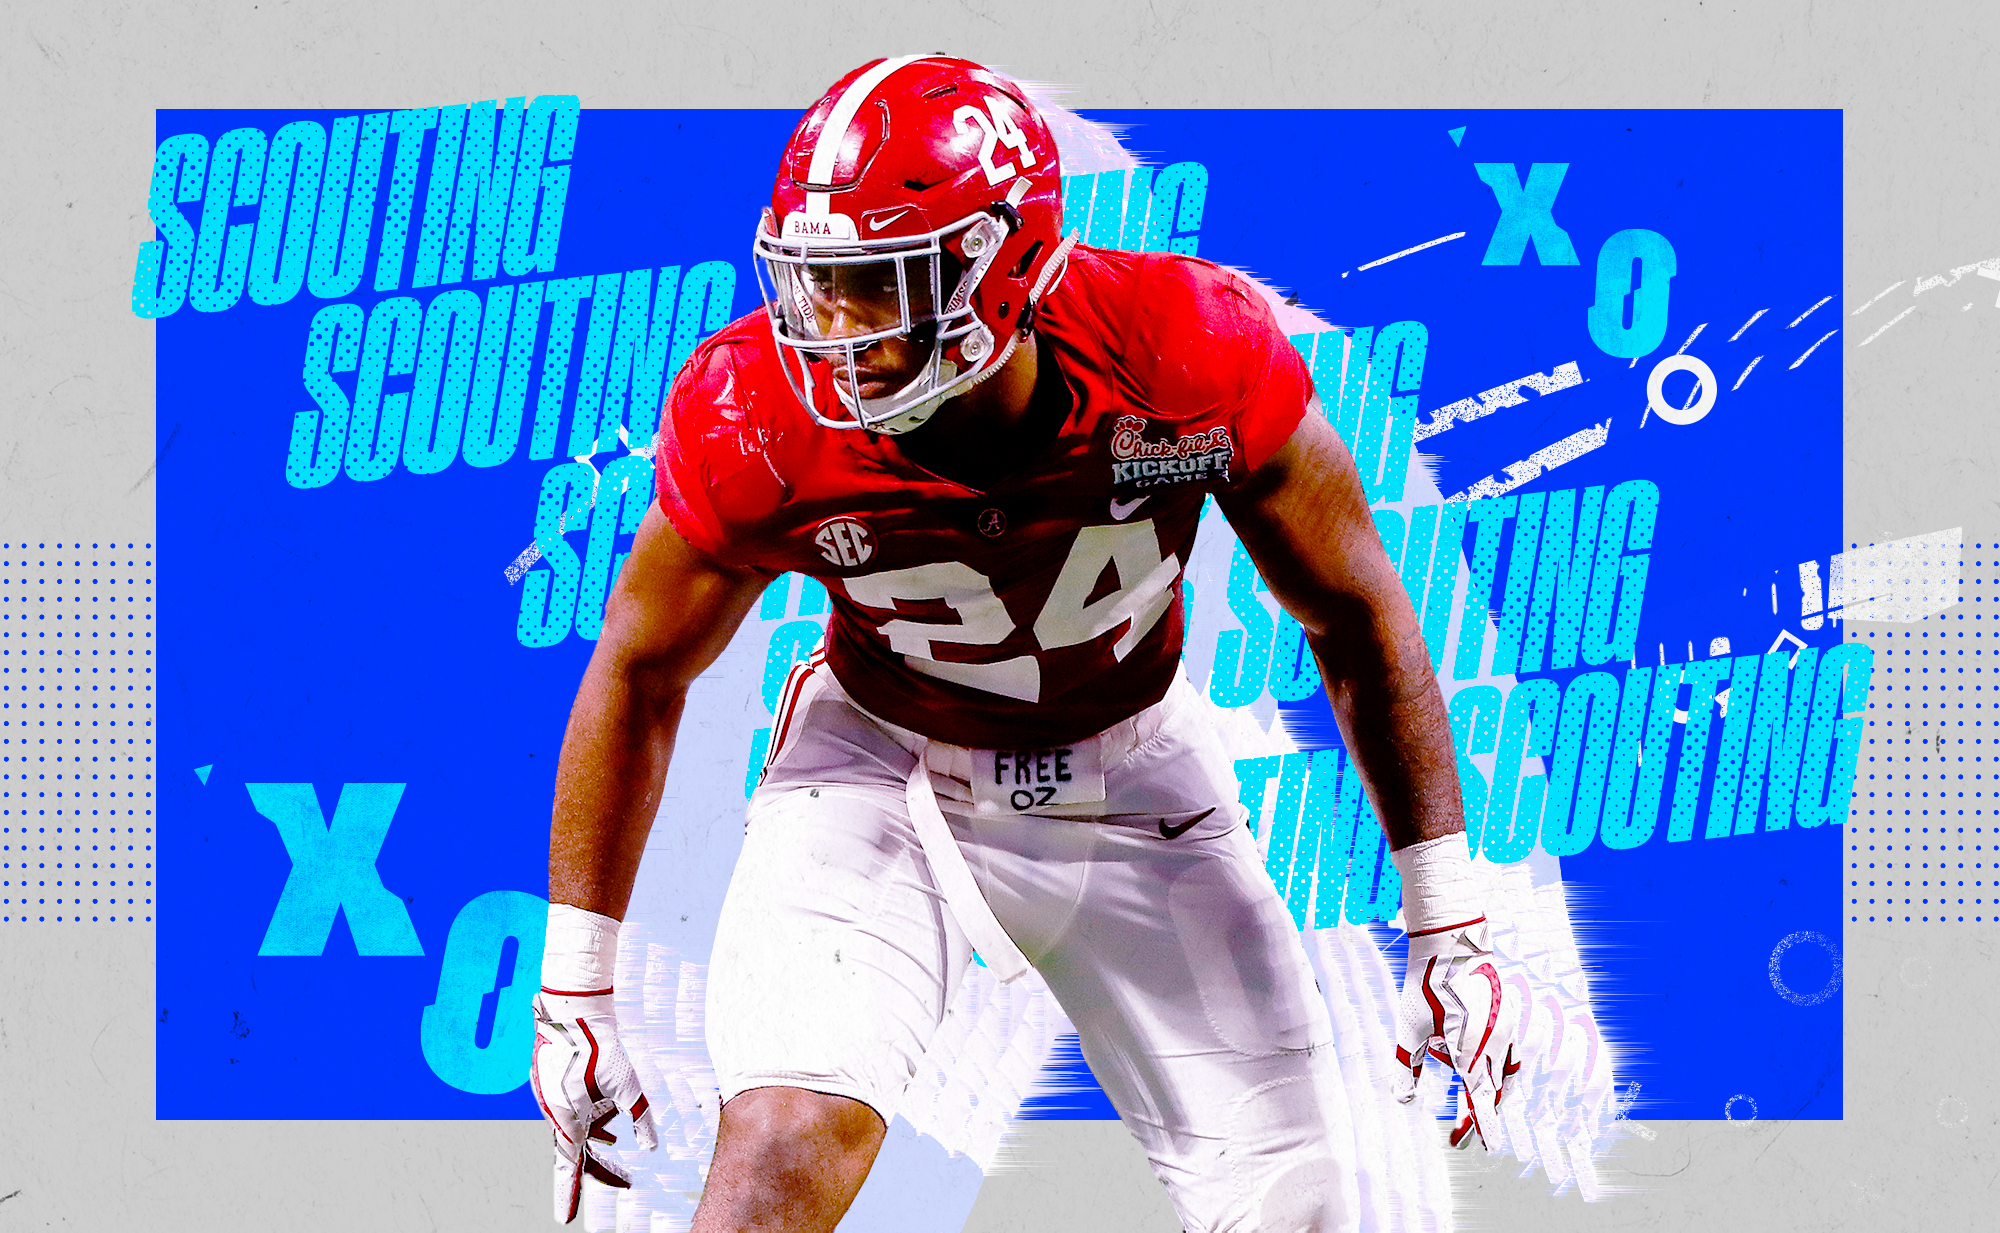 """An illustration of NFL edge prospect Terrell Lewis in a stance at Alabama, superimposed on a blue and white background with """"SCOUTING"""" and """"X""""s and """"O""""s in aqua lettering"""